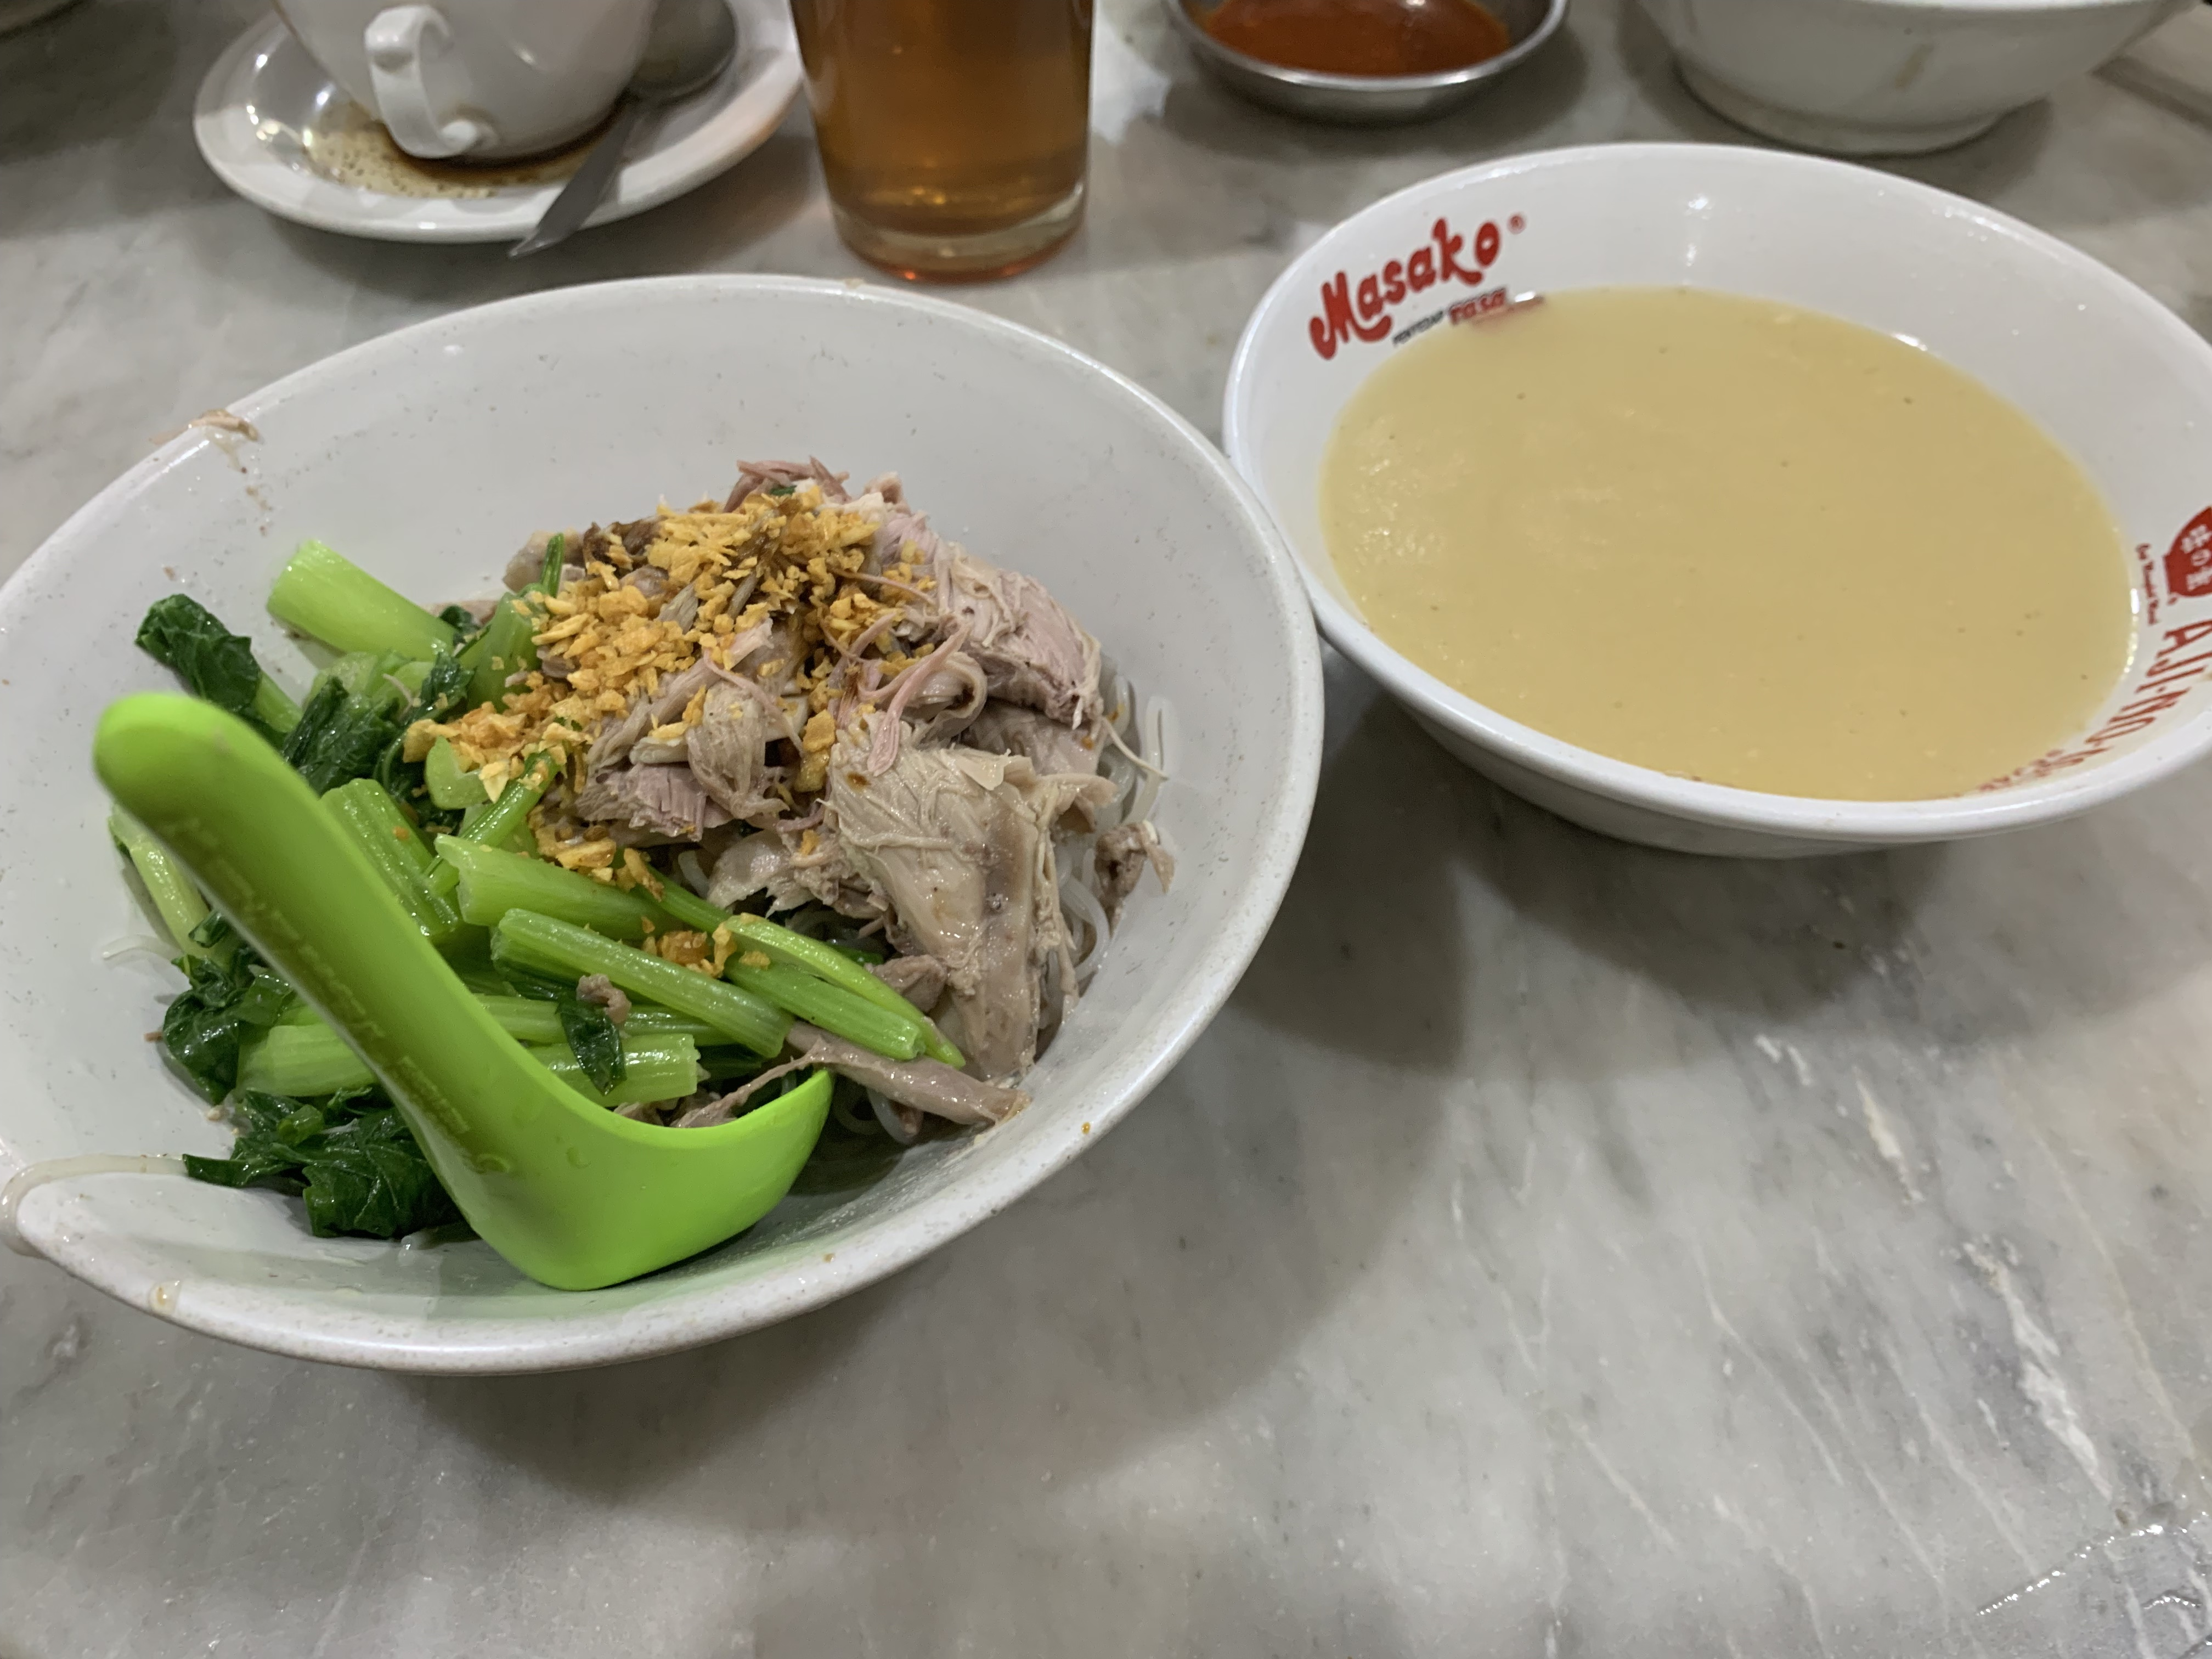 Image shows a bowl of Indonesian duck noodles and a bowl of homemade soup